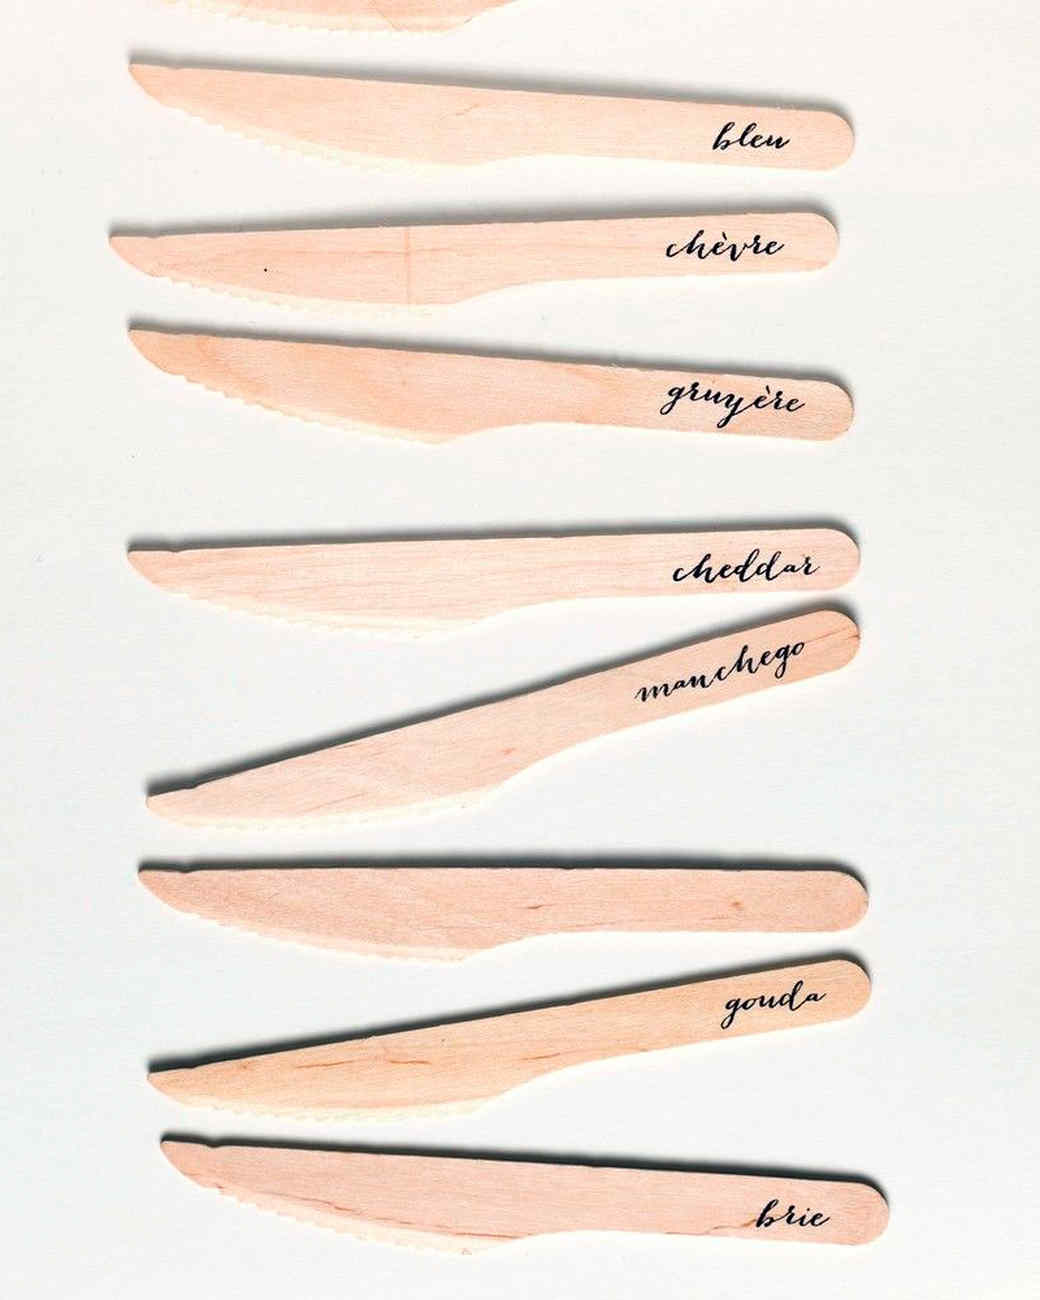 sucre-shop-cheese-knives-1412.jpg